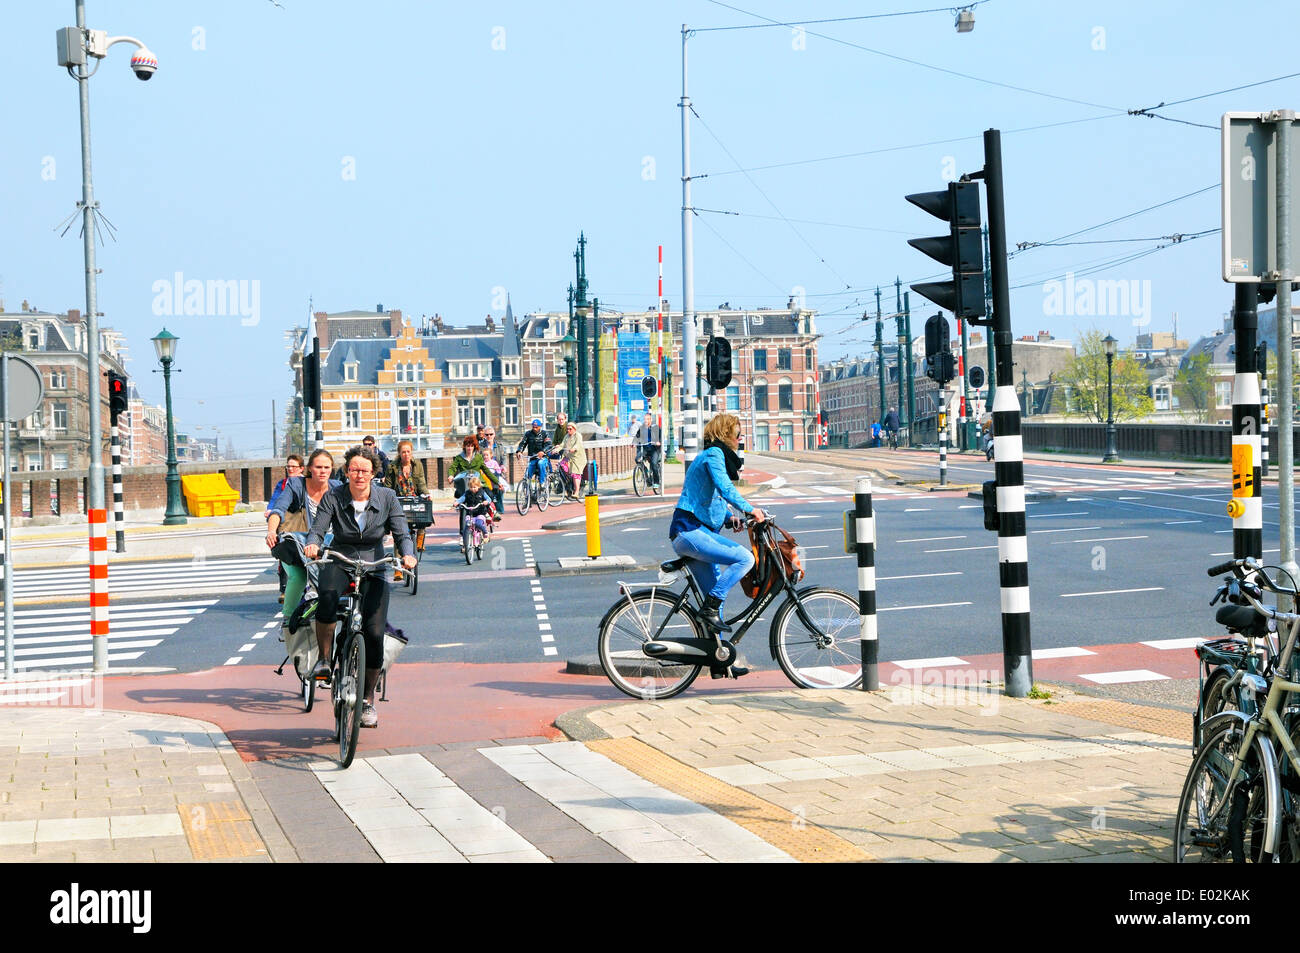 Cyclists in the Amstel area of Amsterdam, Noord Holland, Netherlands - Stock Image